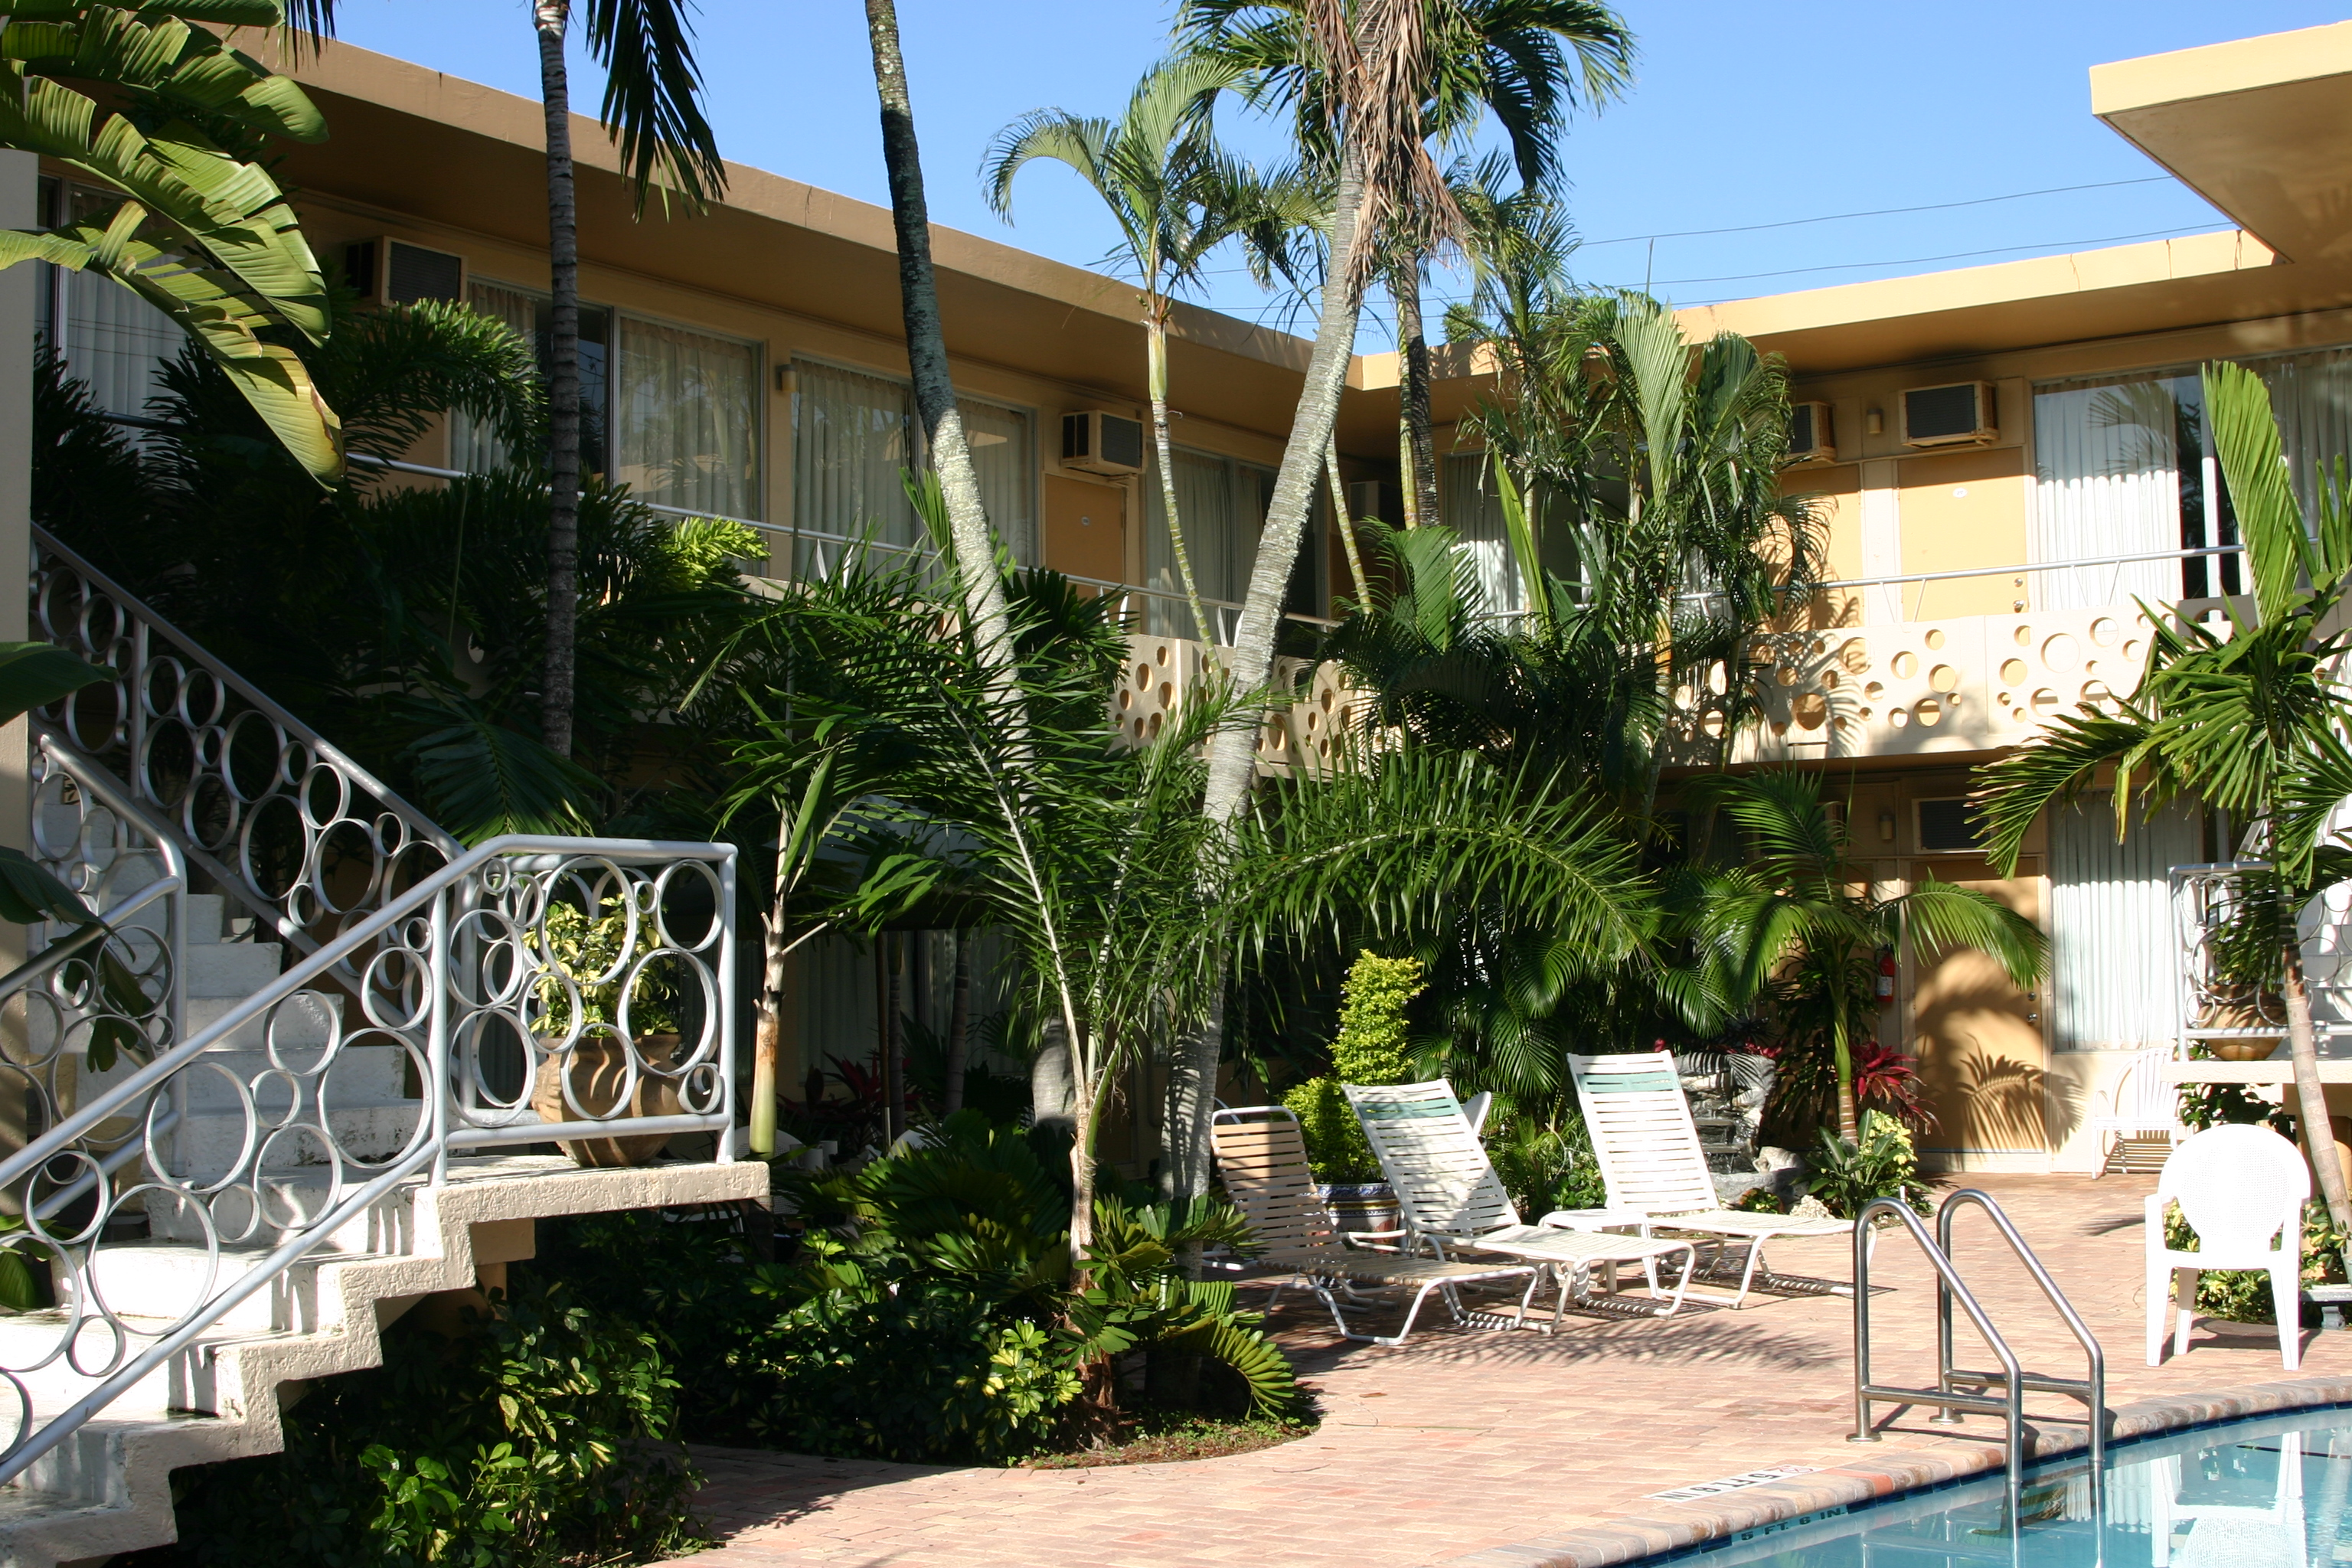 Gay guest houses in ft lauderdale